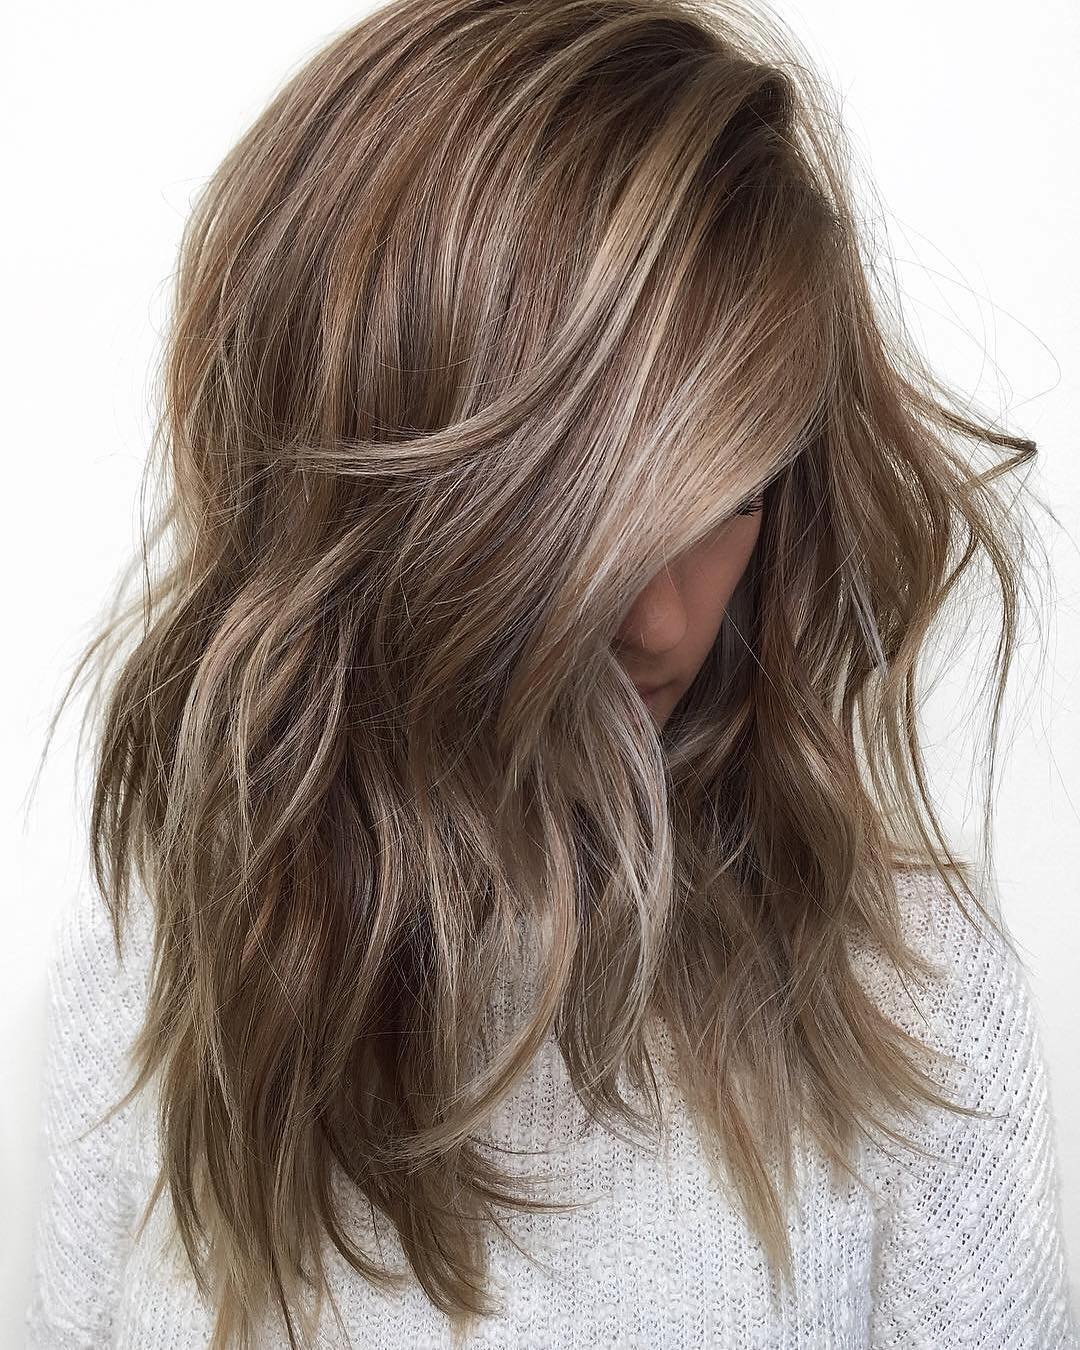 hair colors and styles for medium length hair 10 medium length hair color ideas 2019 5921